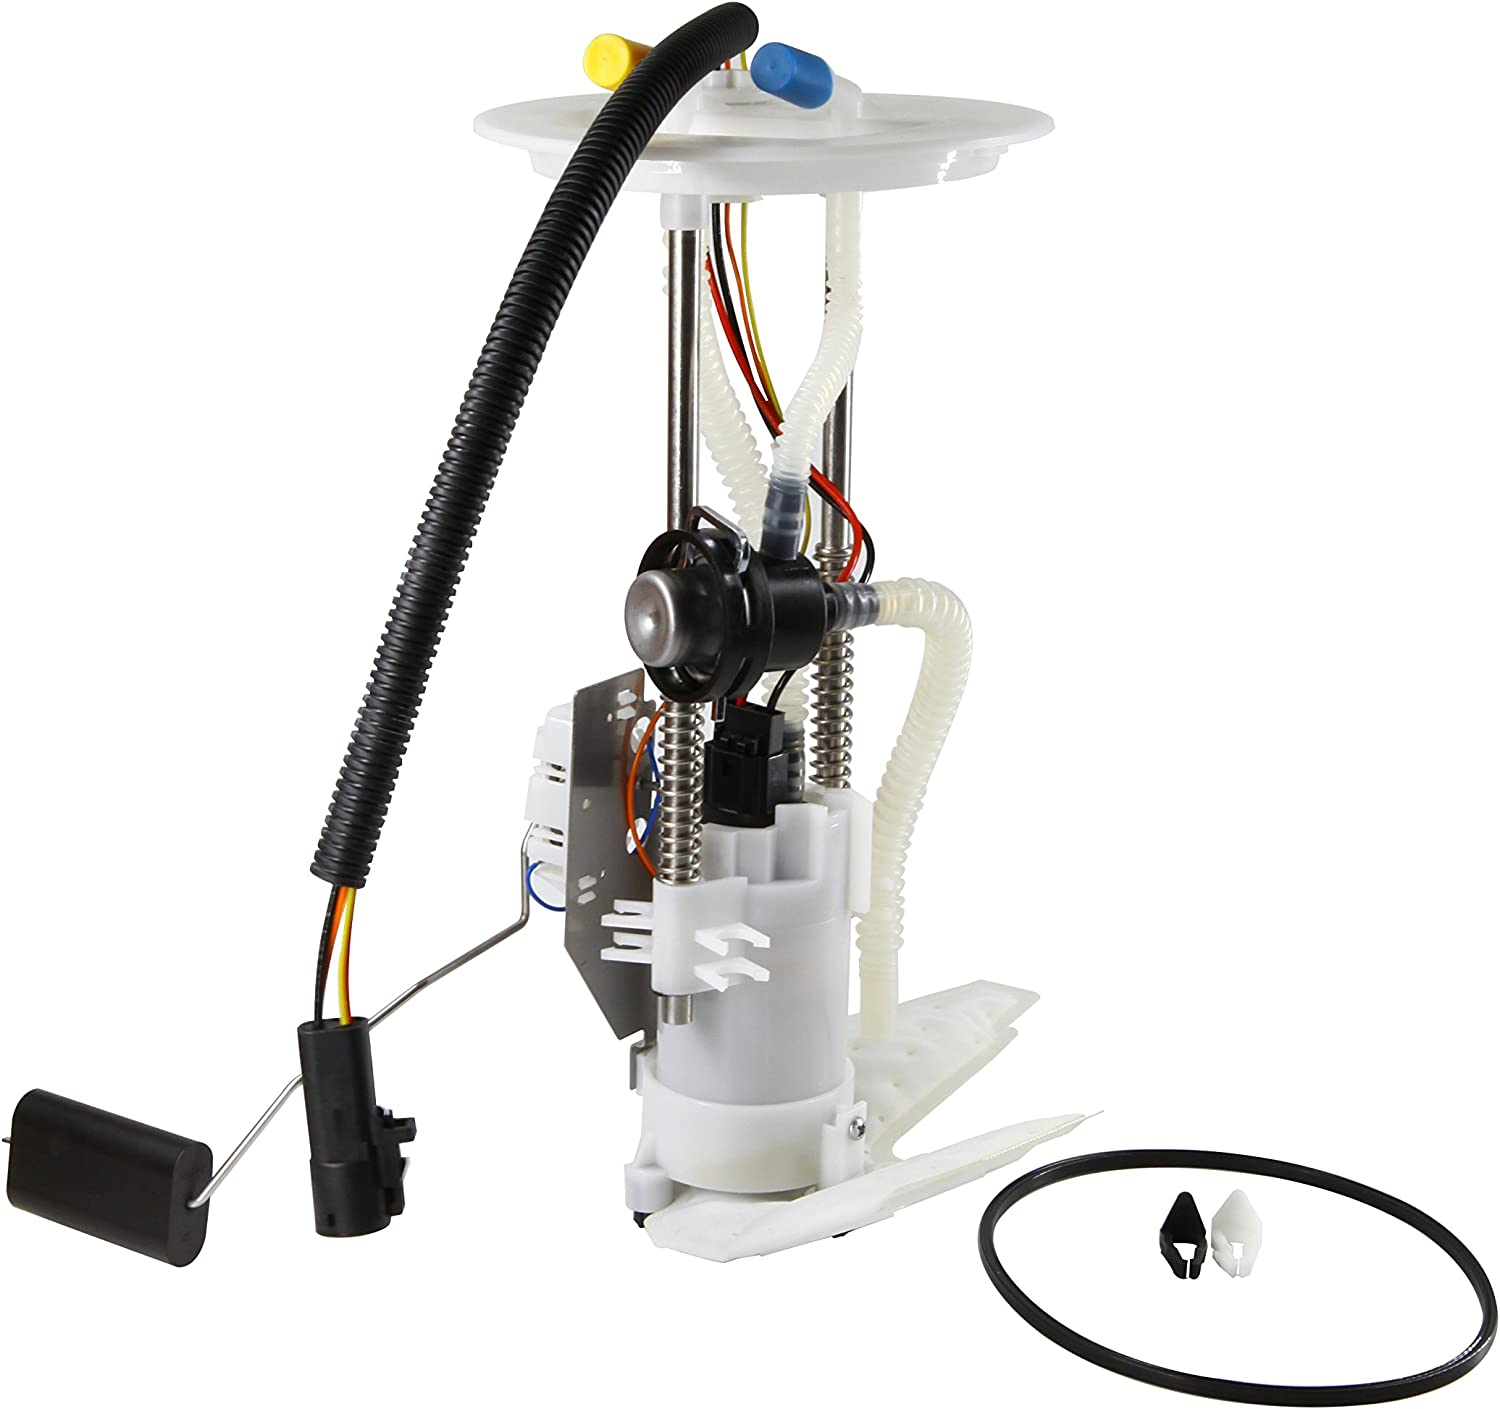 New Electric Fuel Pump Assembly Fits 2003-2004 Ford Expedition 5.4L Engine